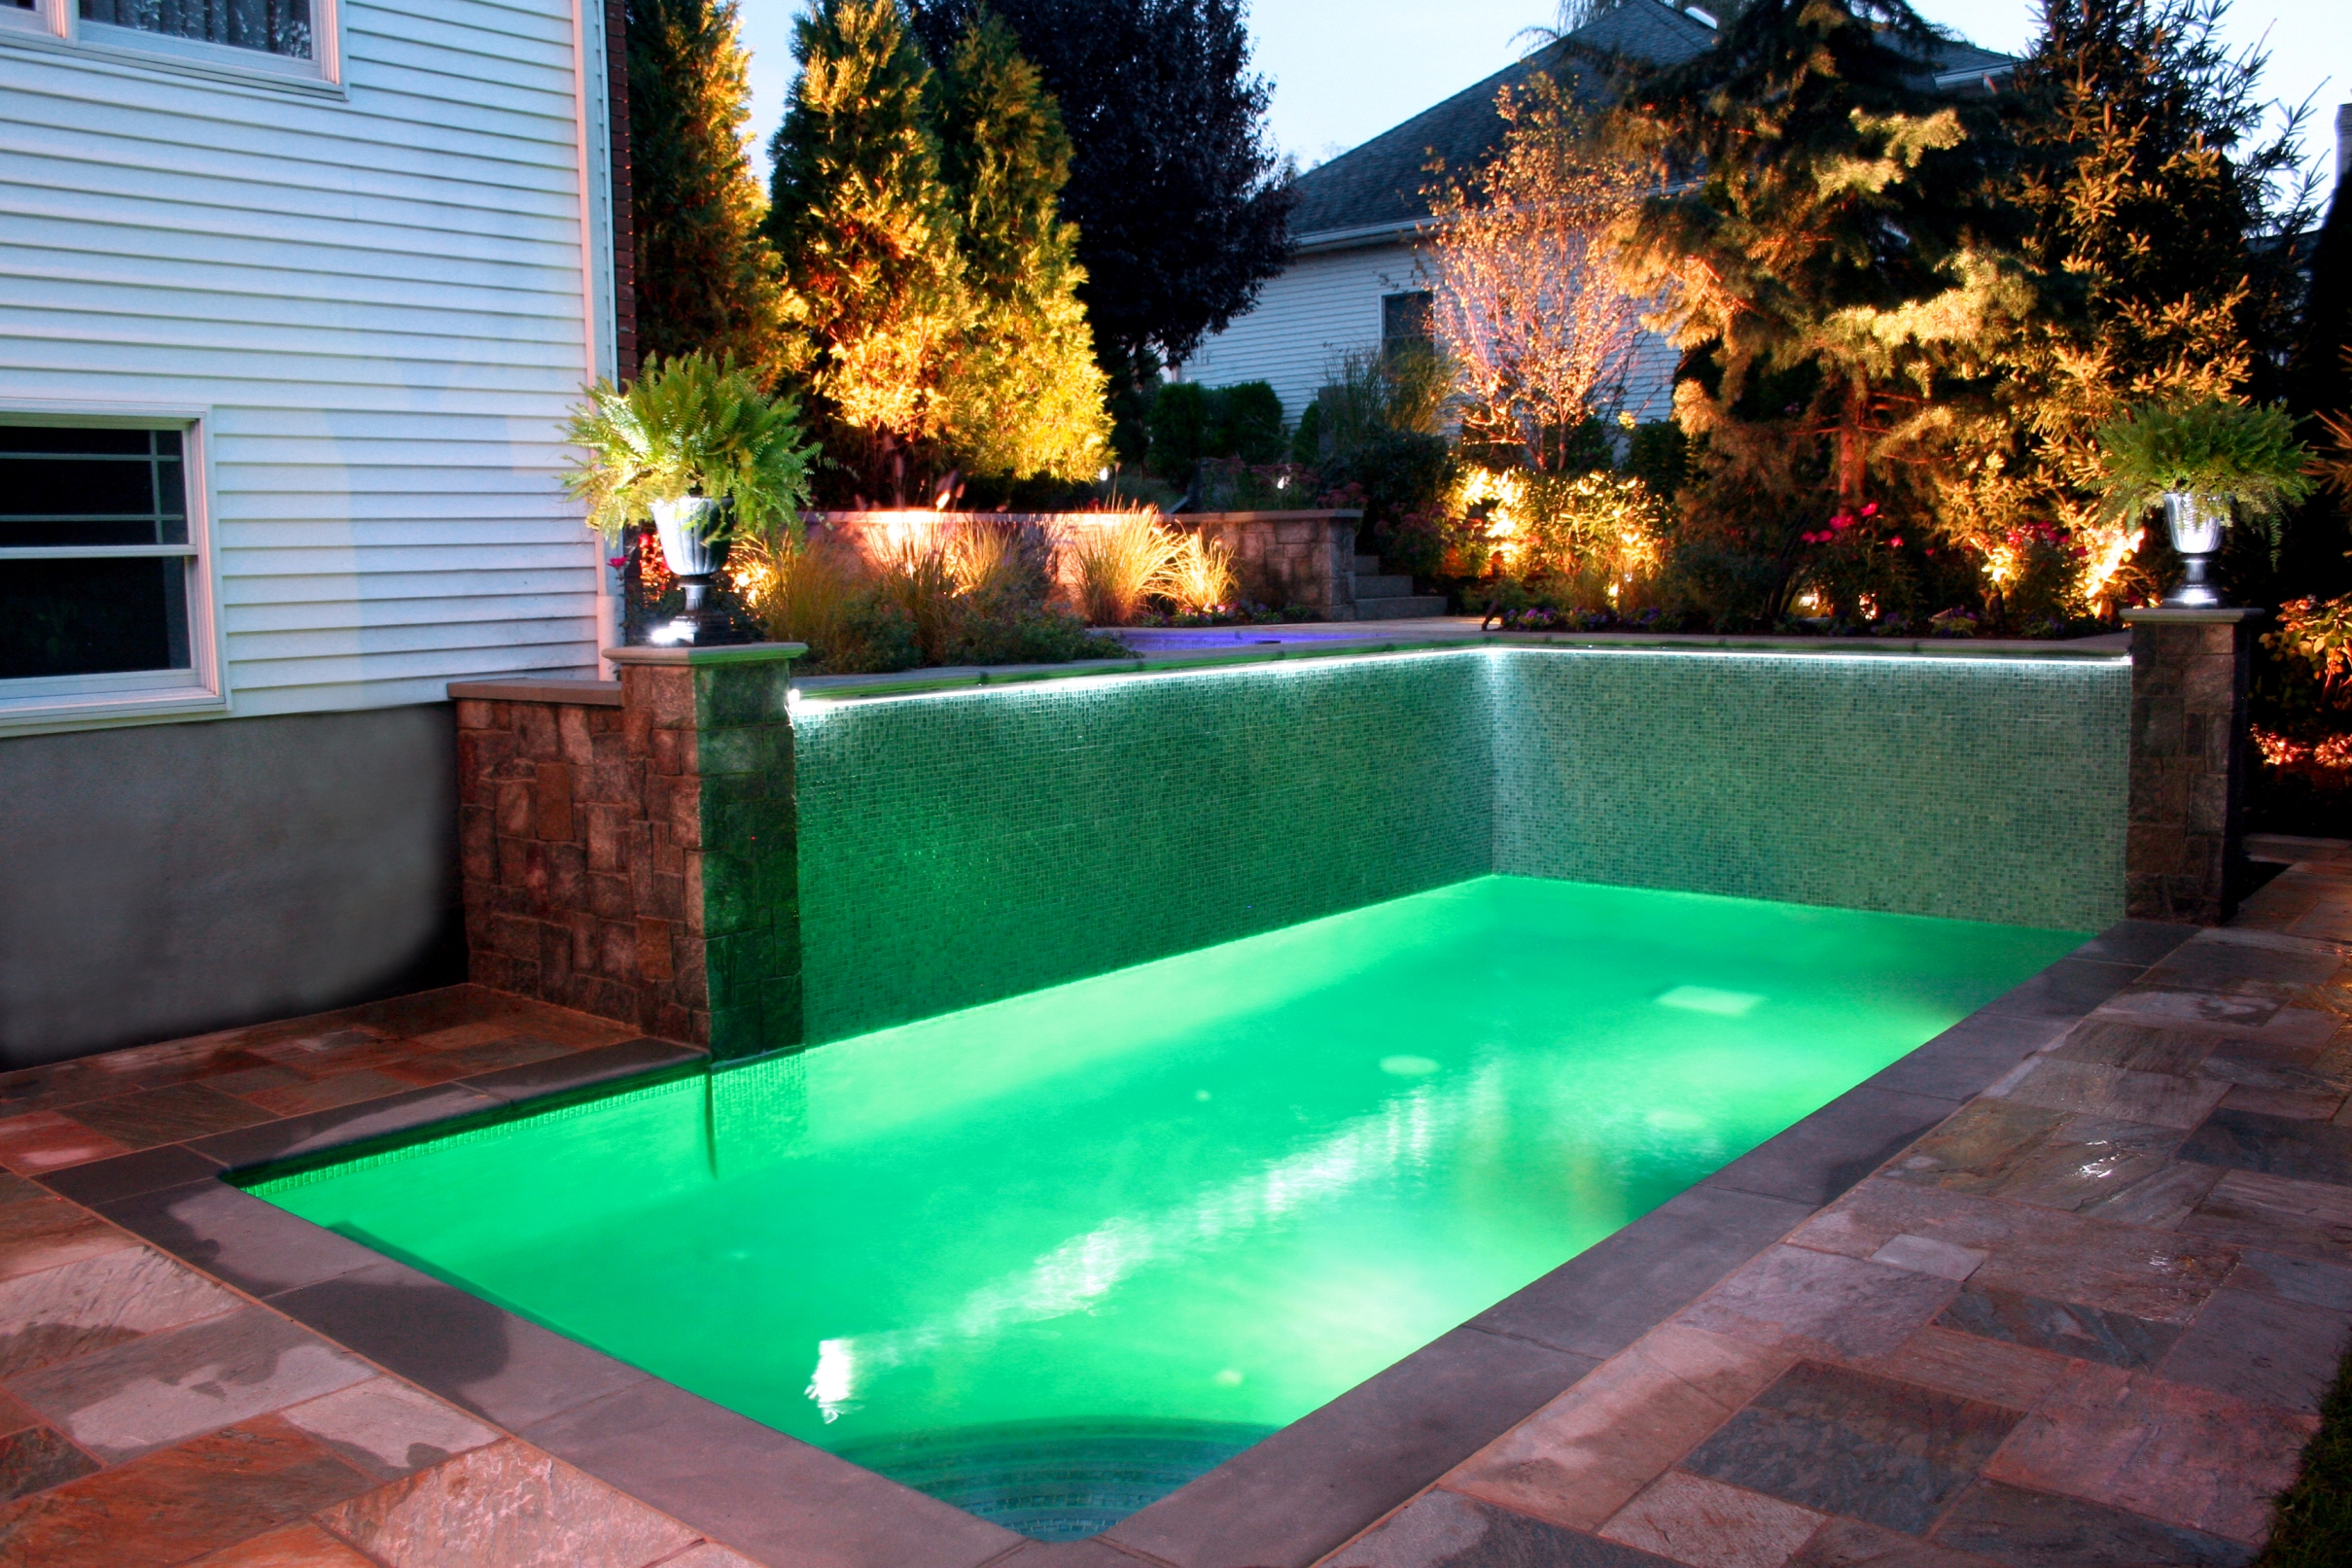 Outdoor Pool Lighting Ideas Light Columns Party Lightingoutdoor  Lightinglighting Ideasoutdoor Parties Pool Small Backyard Pool Ideas